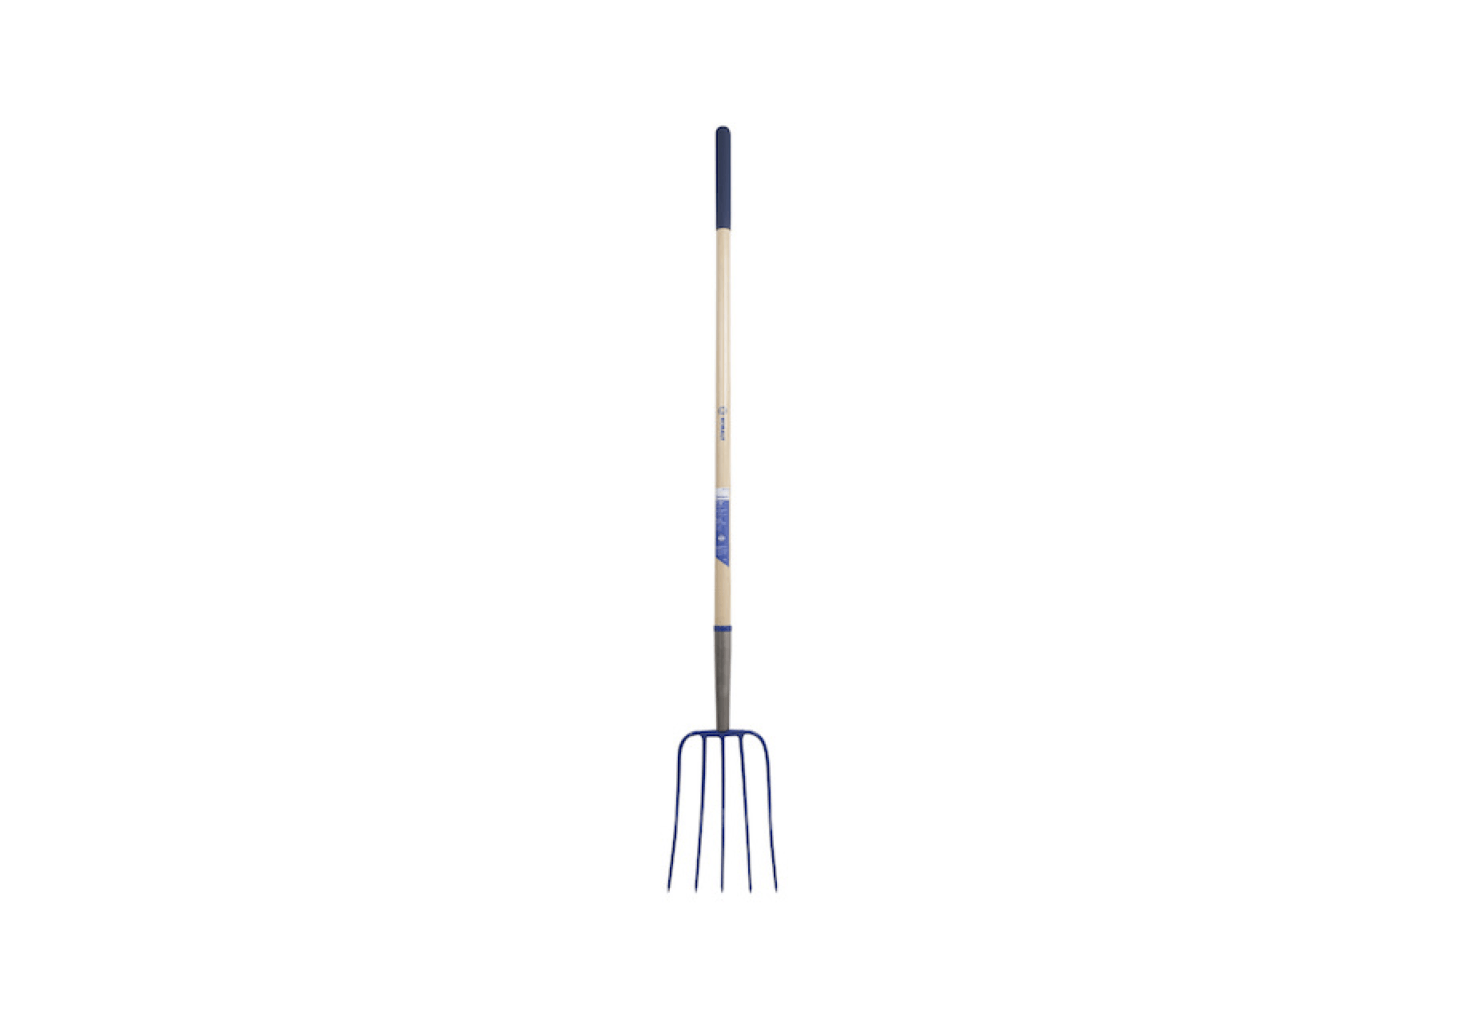 A 54-inch Wood-Handle Steel Manure Fork has a forged steel head and is $45.98 from Lowe&#8